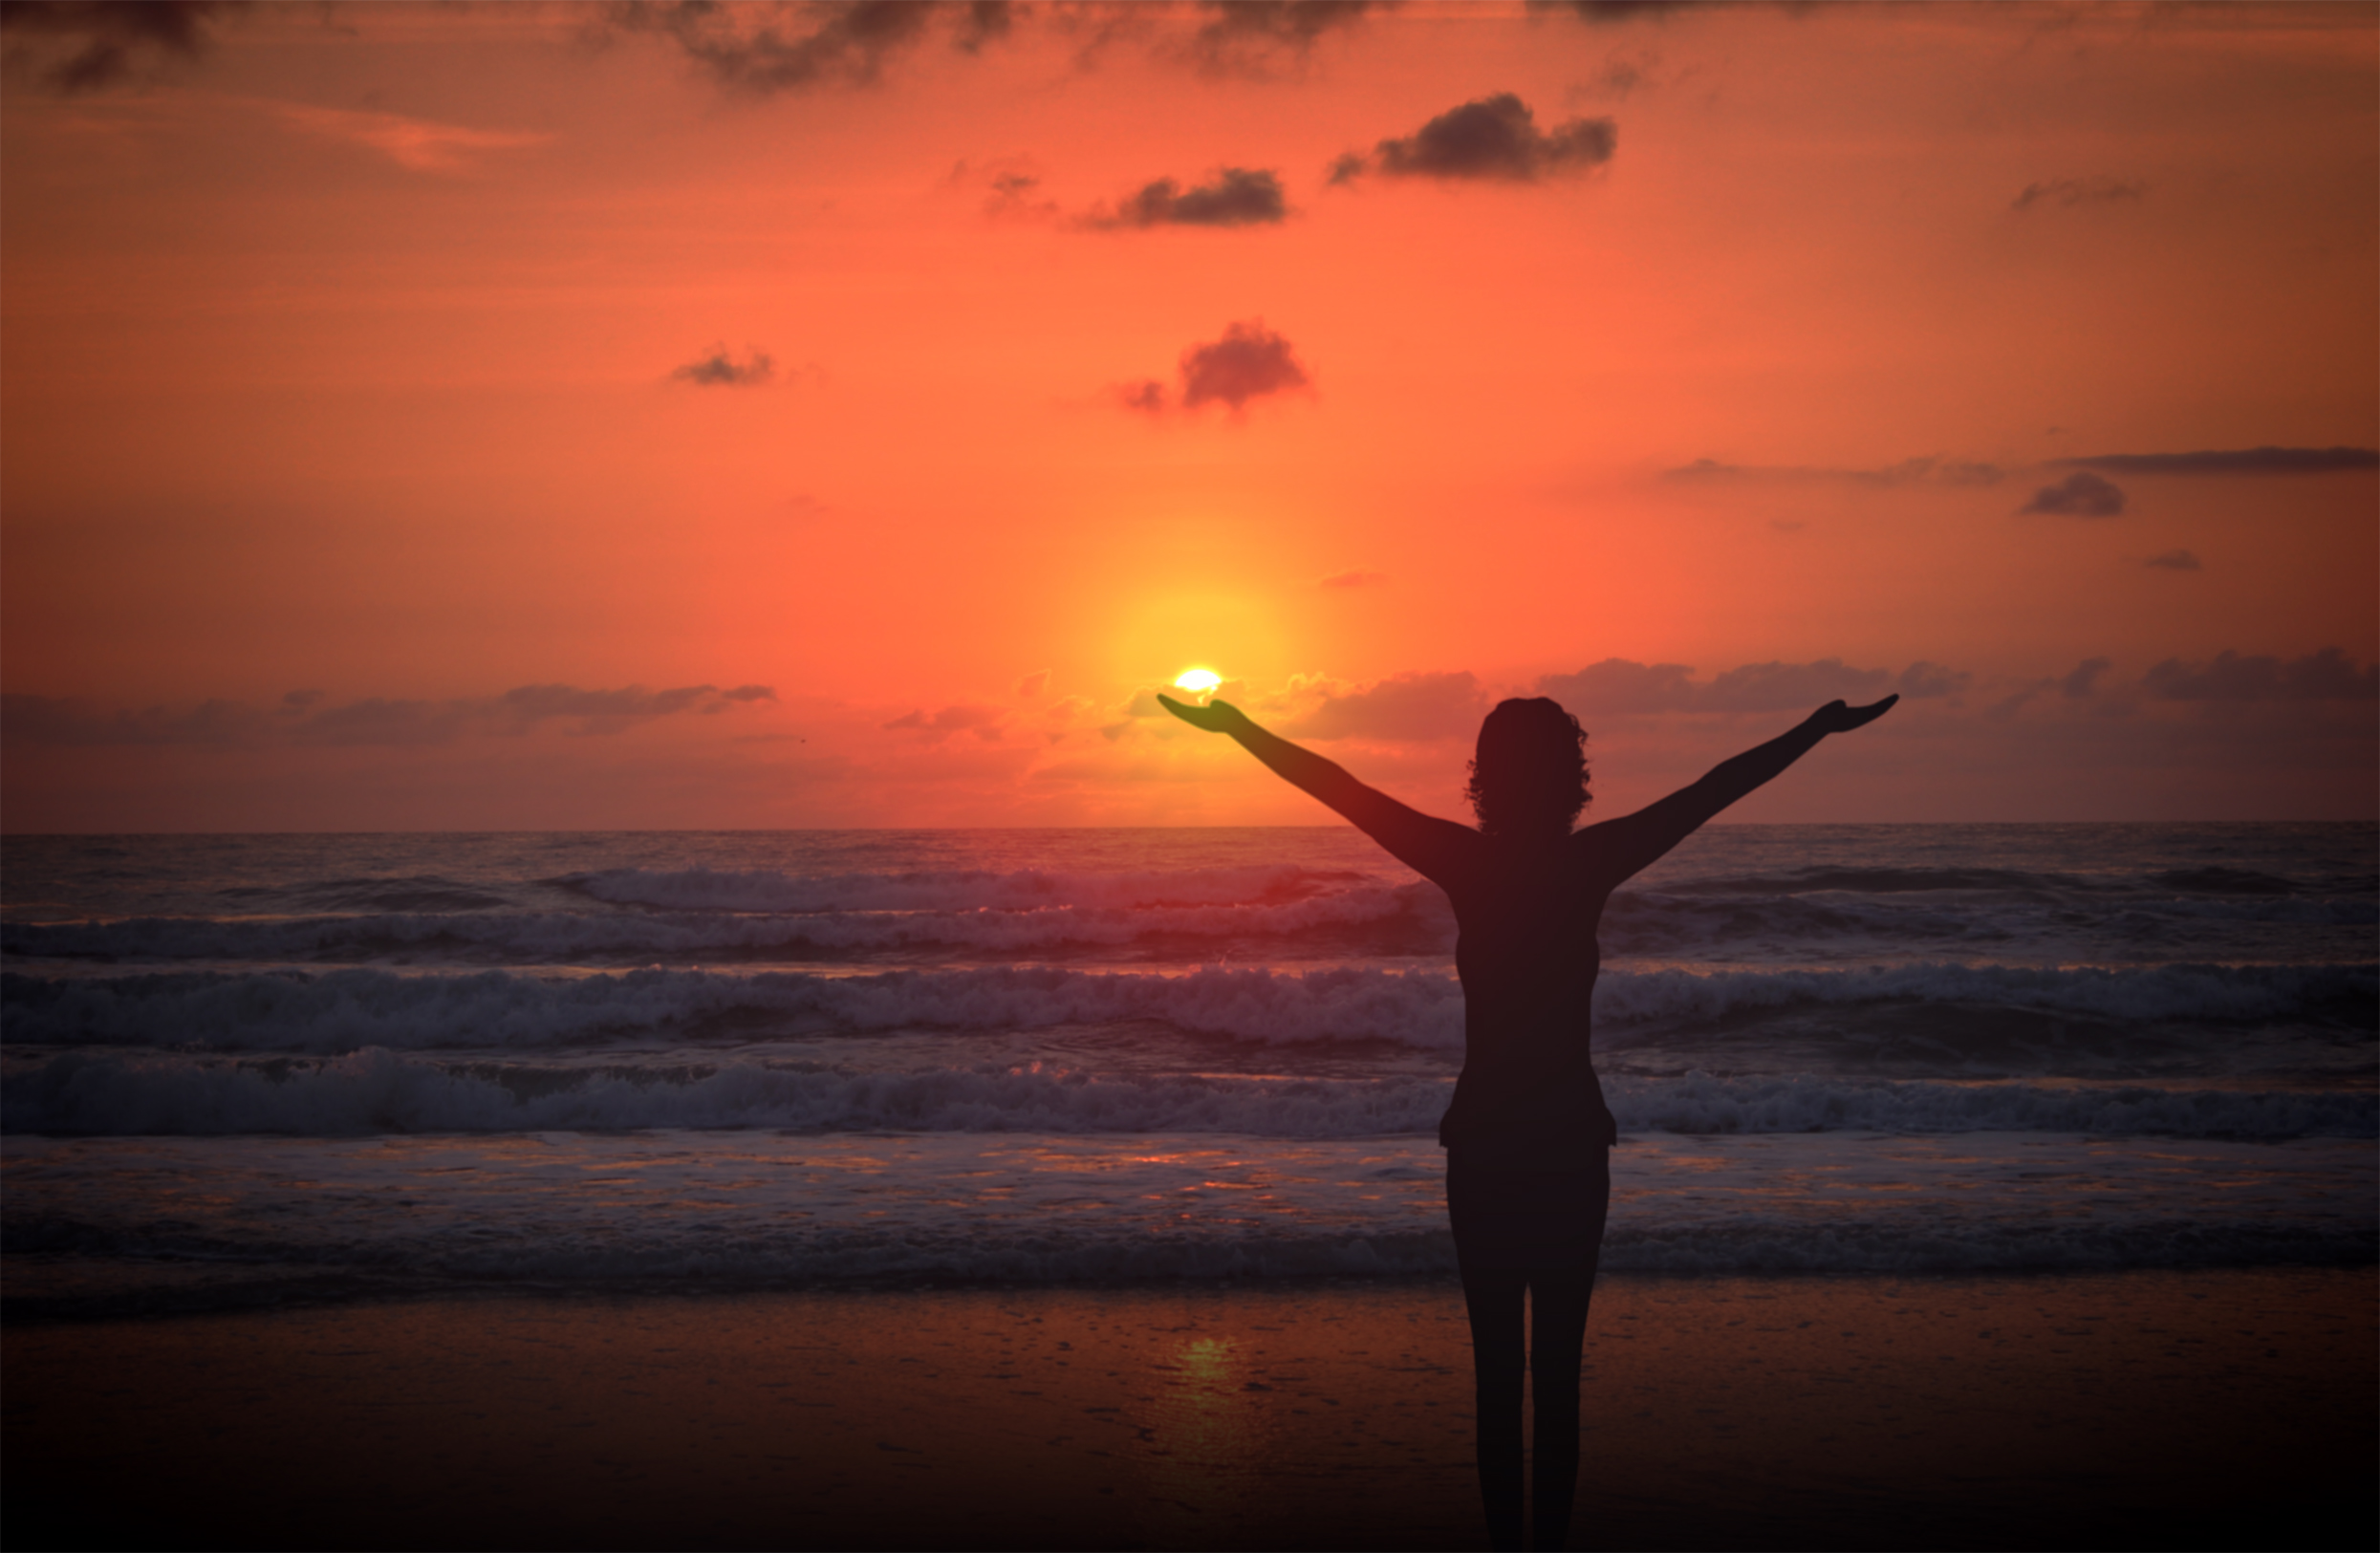 Celebrating life - a woman raises her arms at sunset photo